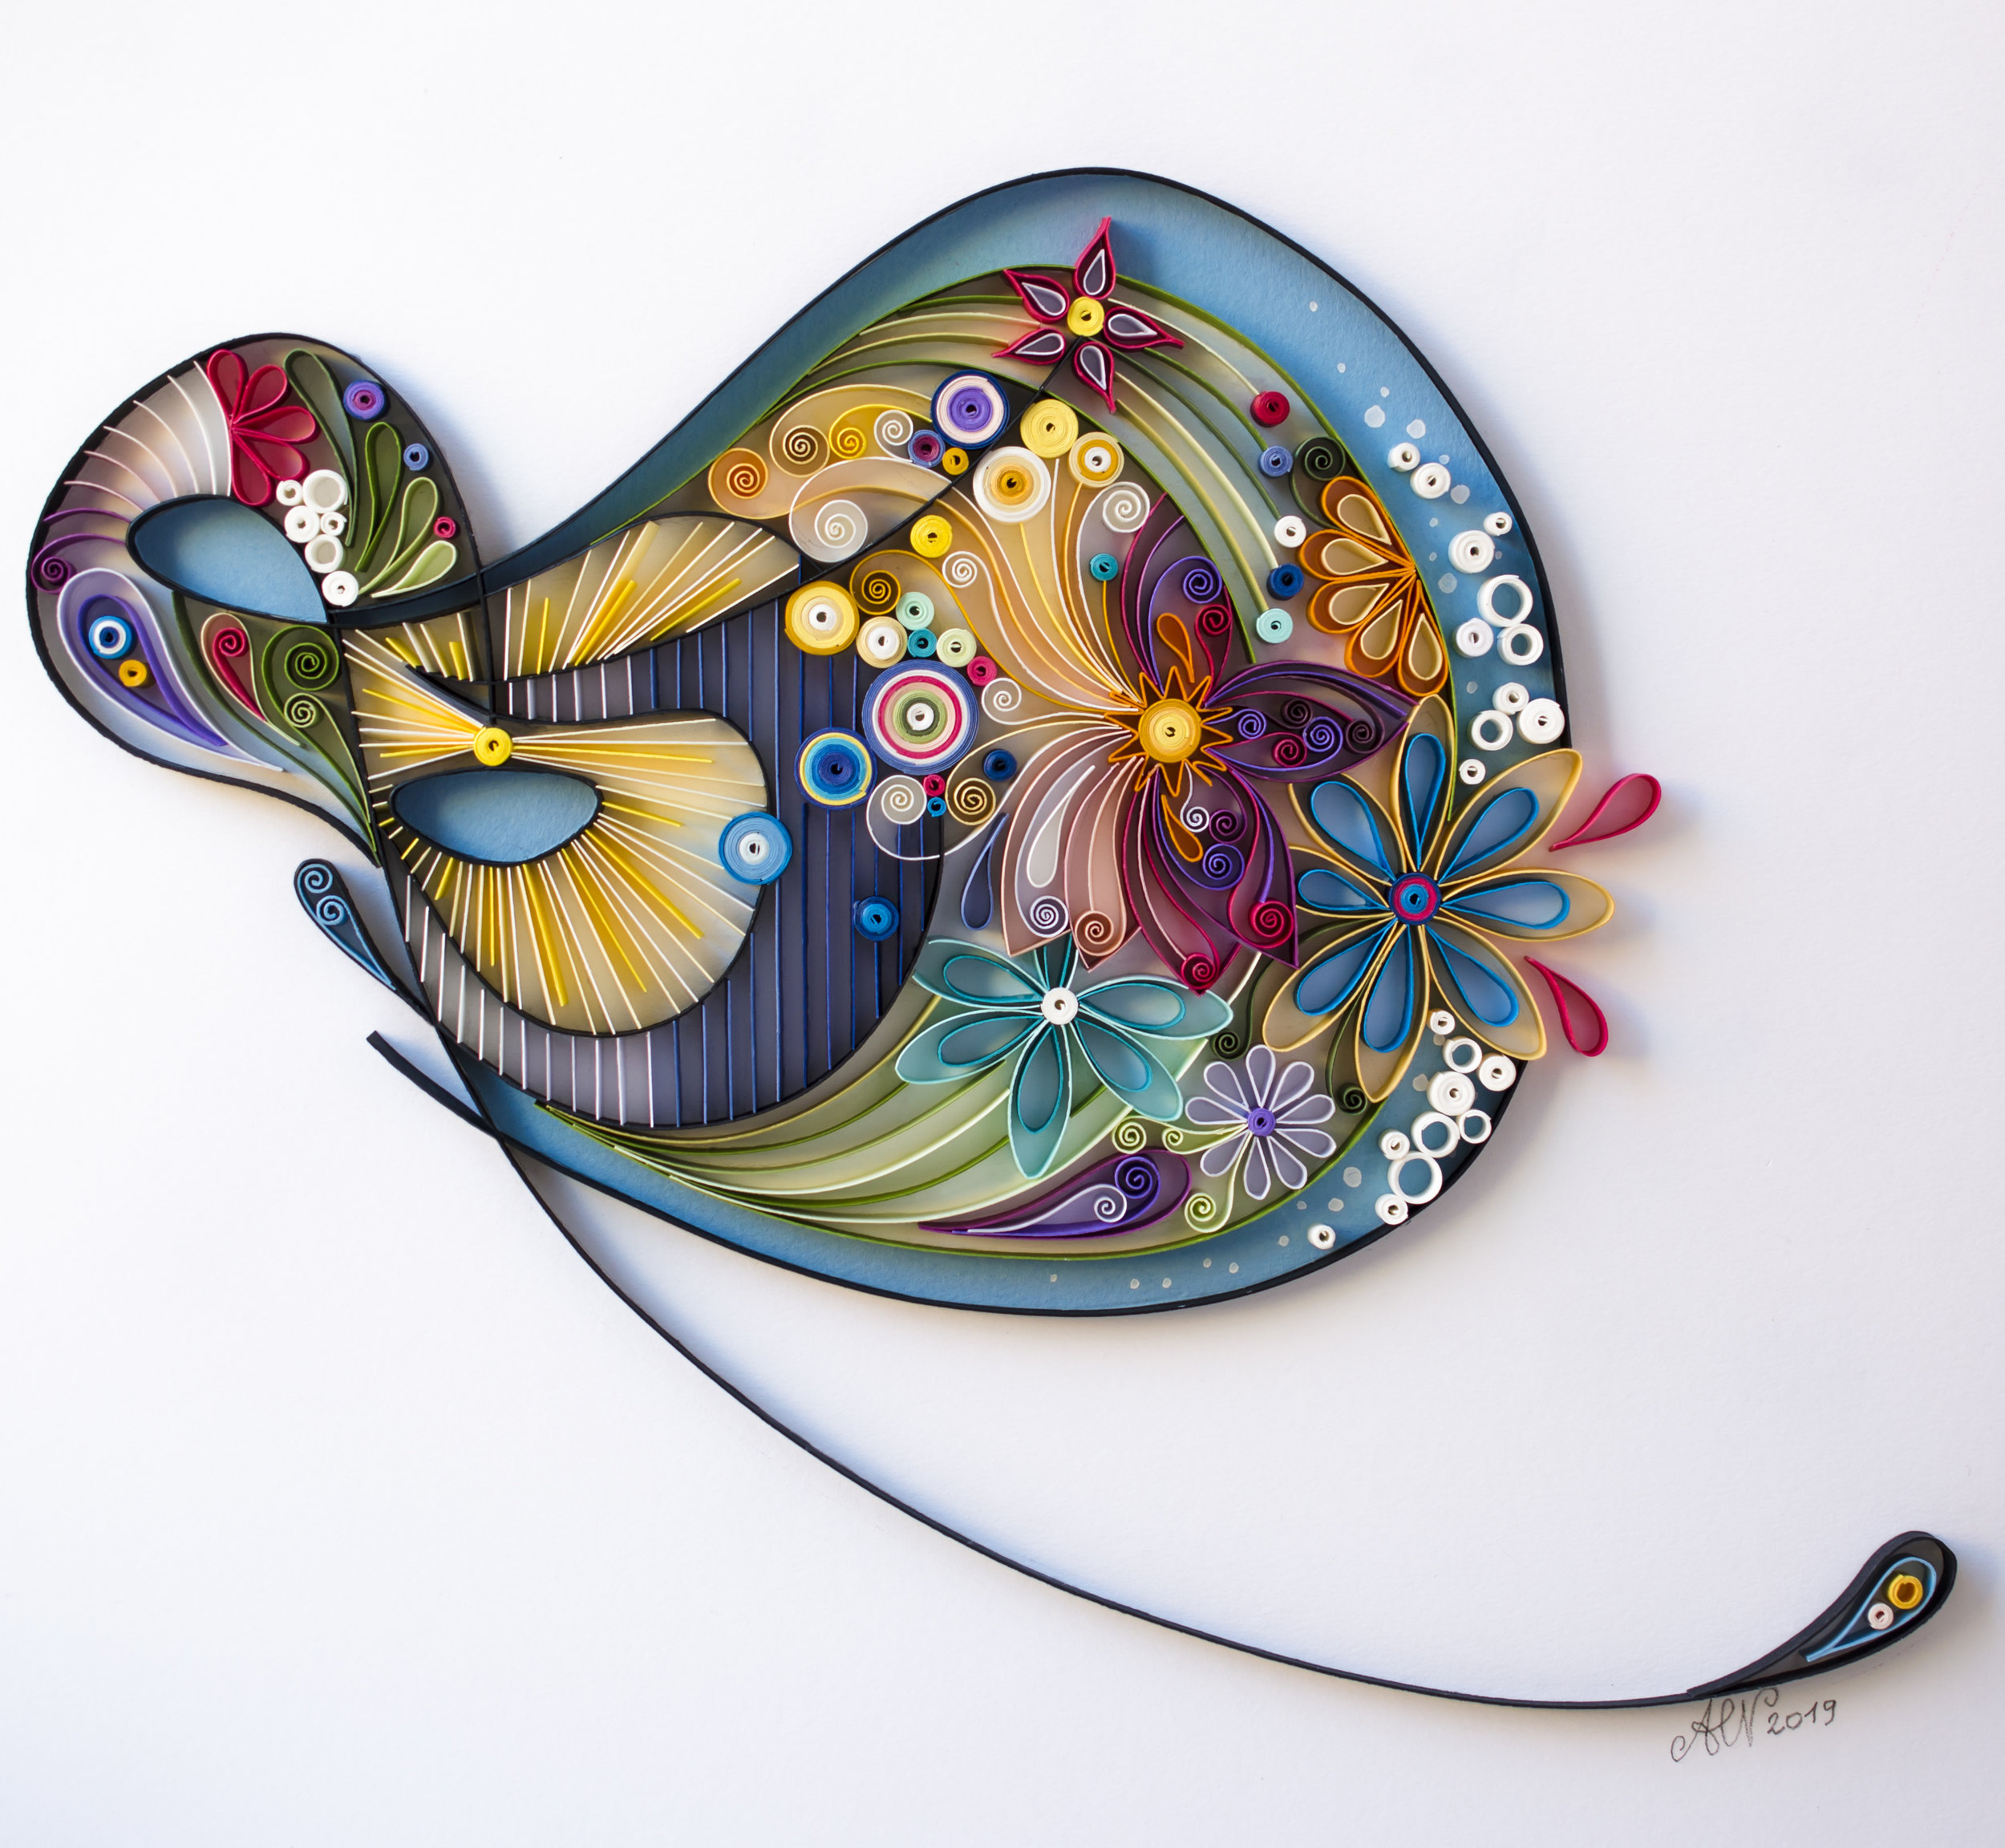 Reflections By Anna Chiara Valentini, based on the name of Majid's painting  Quilling Art 30 X 30 cm